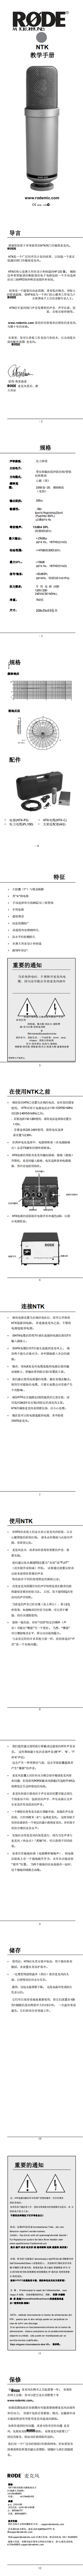 NTK_product_manual_1_12_translate_Chinese_0.png